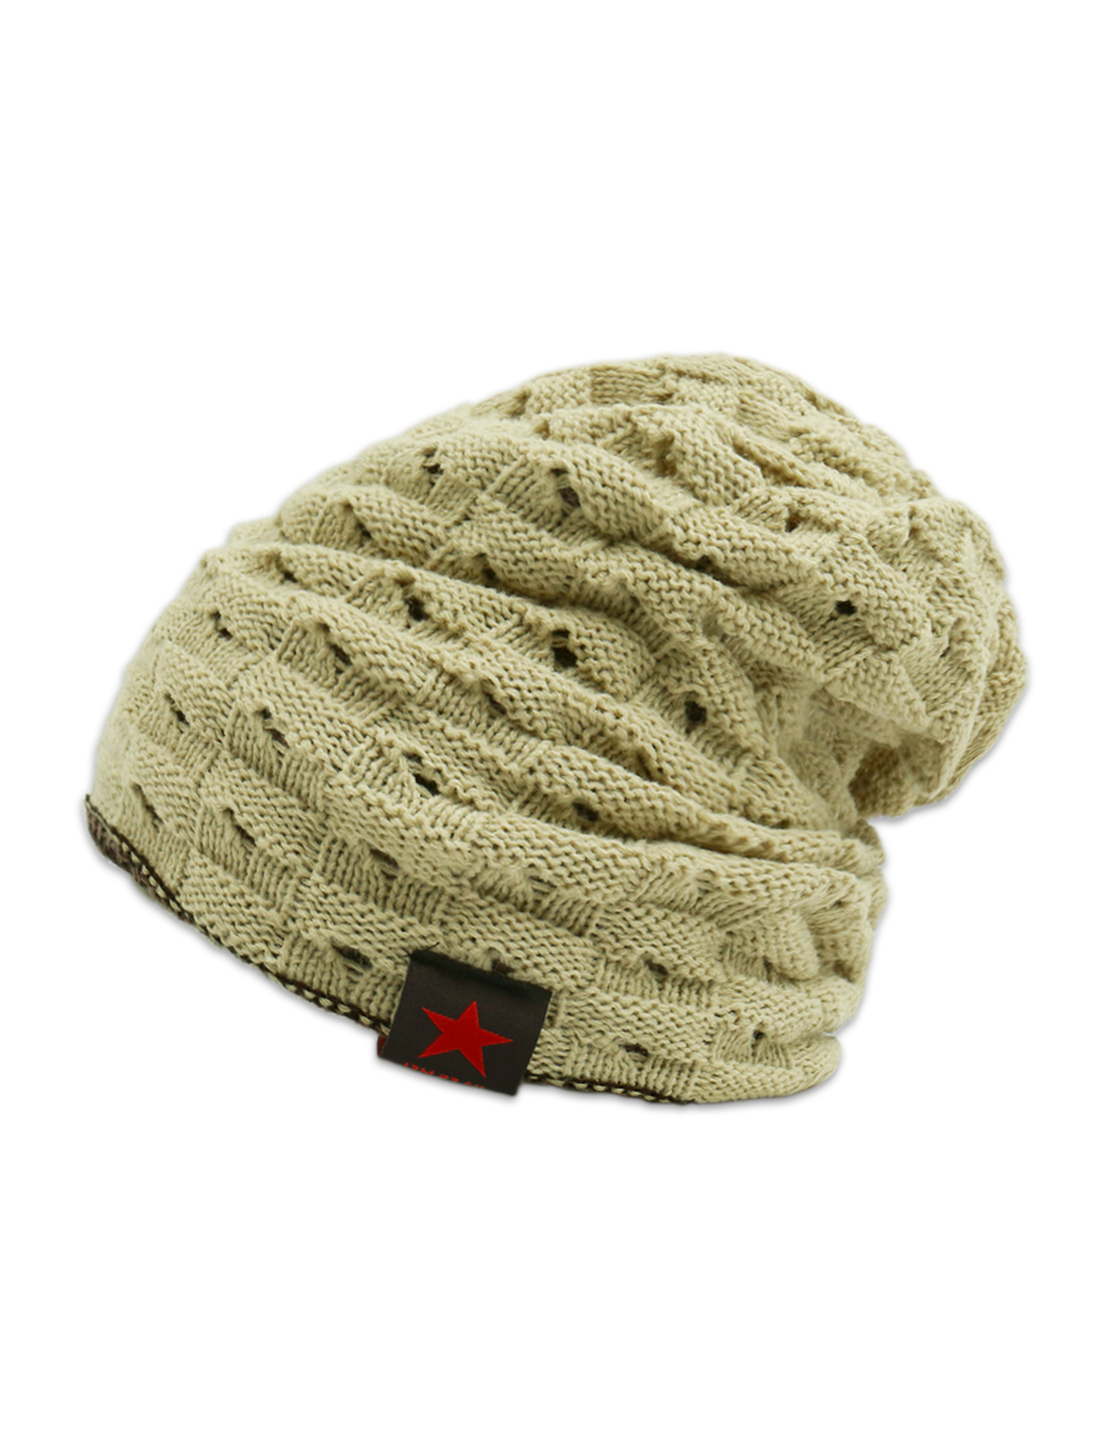 Unisex Hollow Out Design Reversible Knitted Beanie Hat Beige